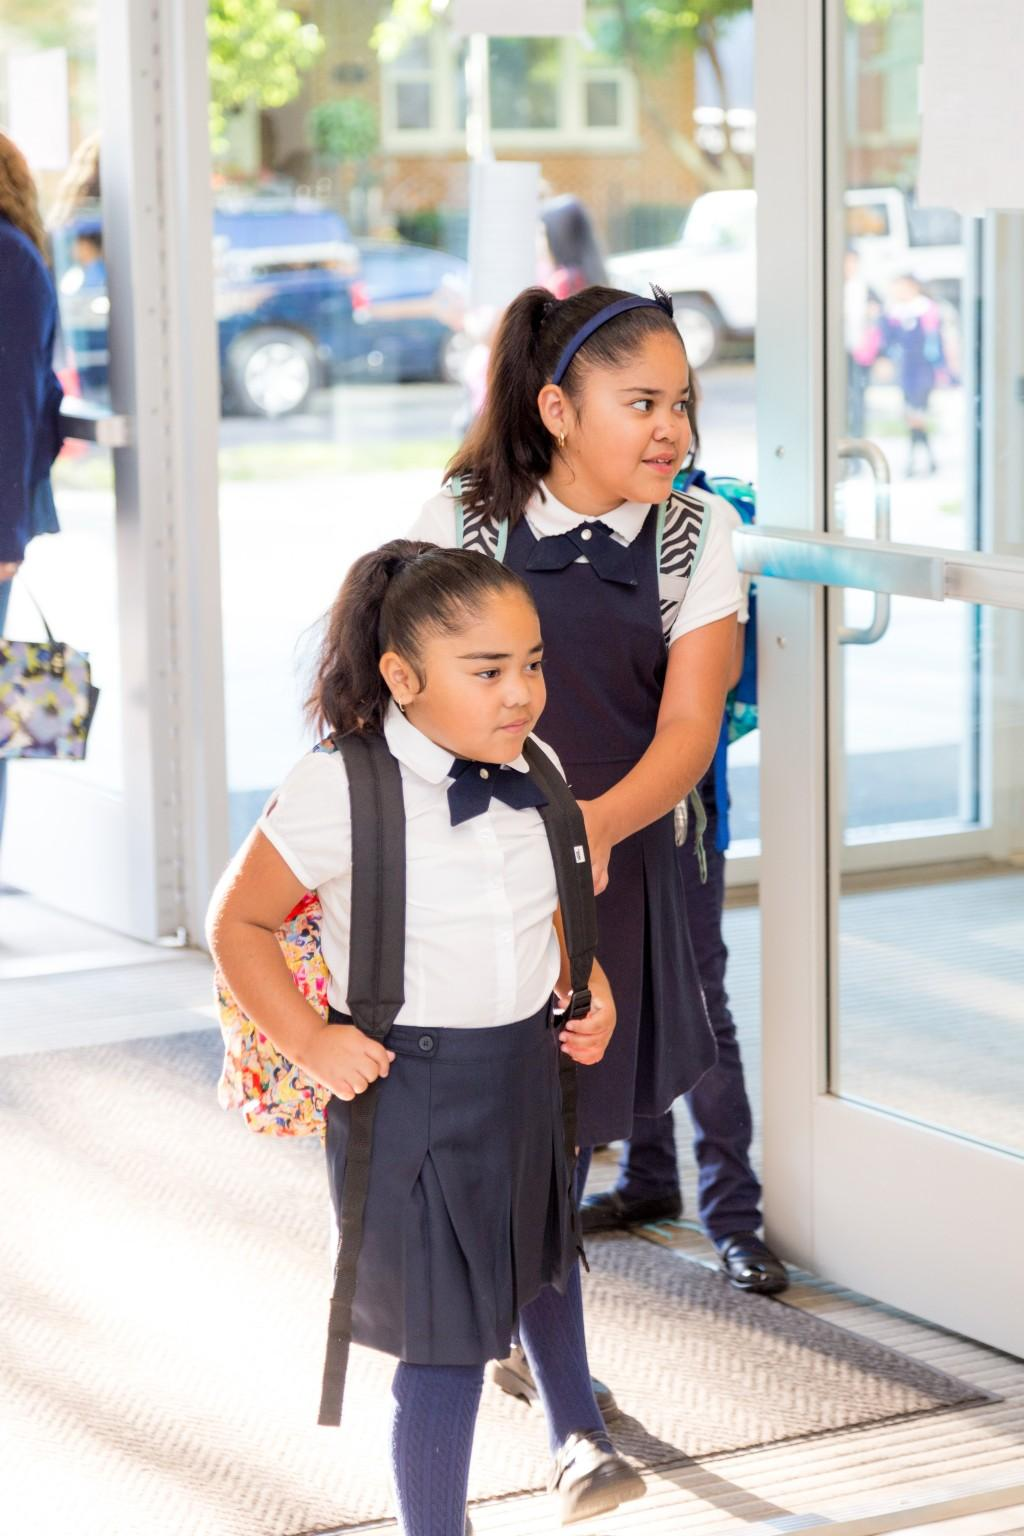 Two young female students entering the school